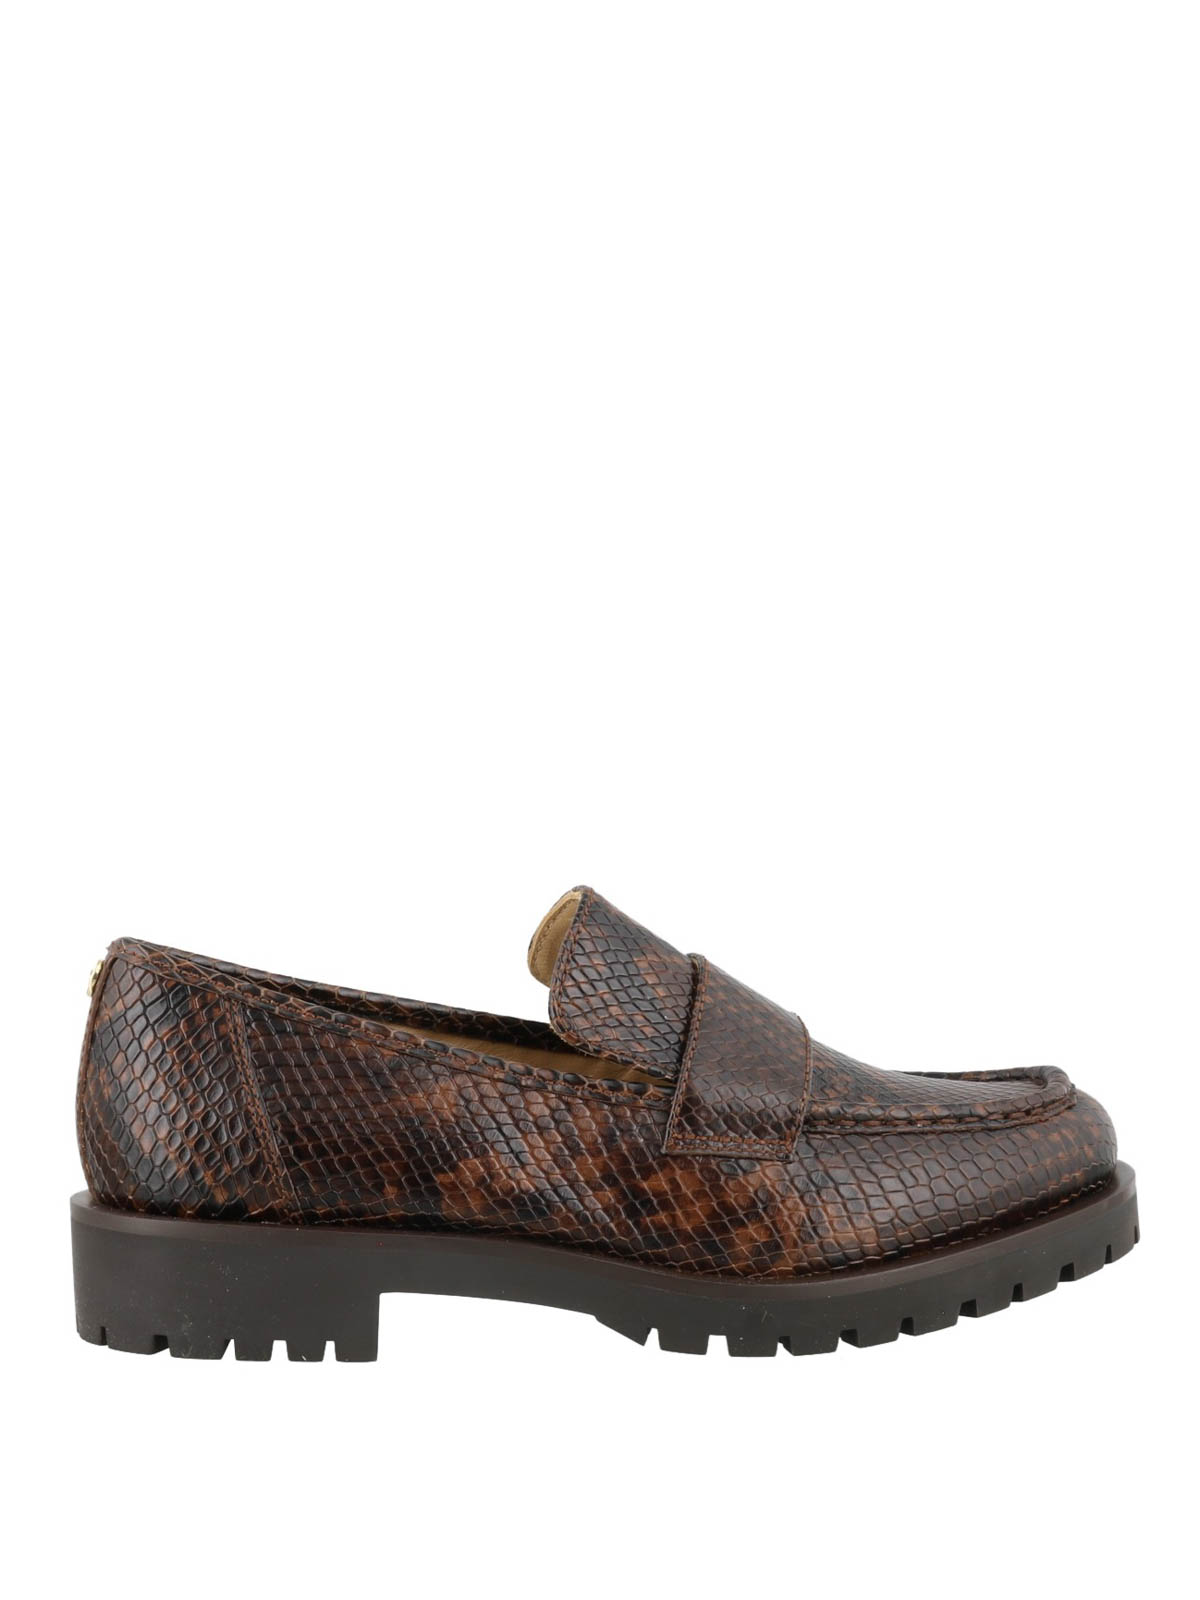 Michael Kors LEATHER LOAFERS